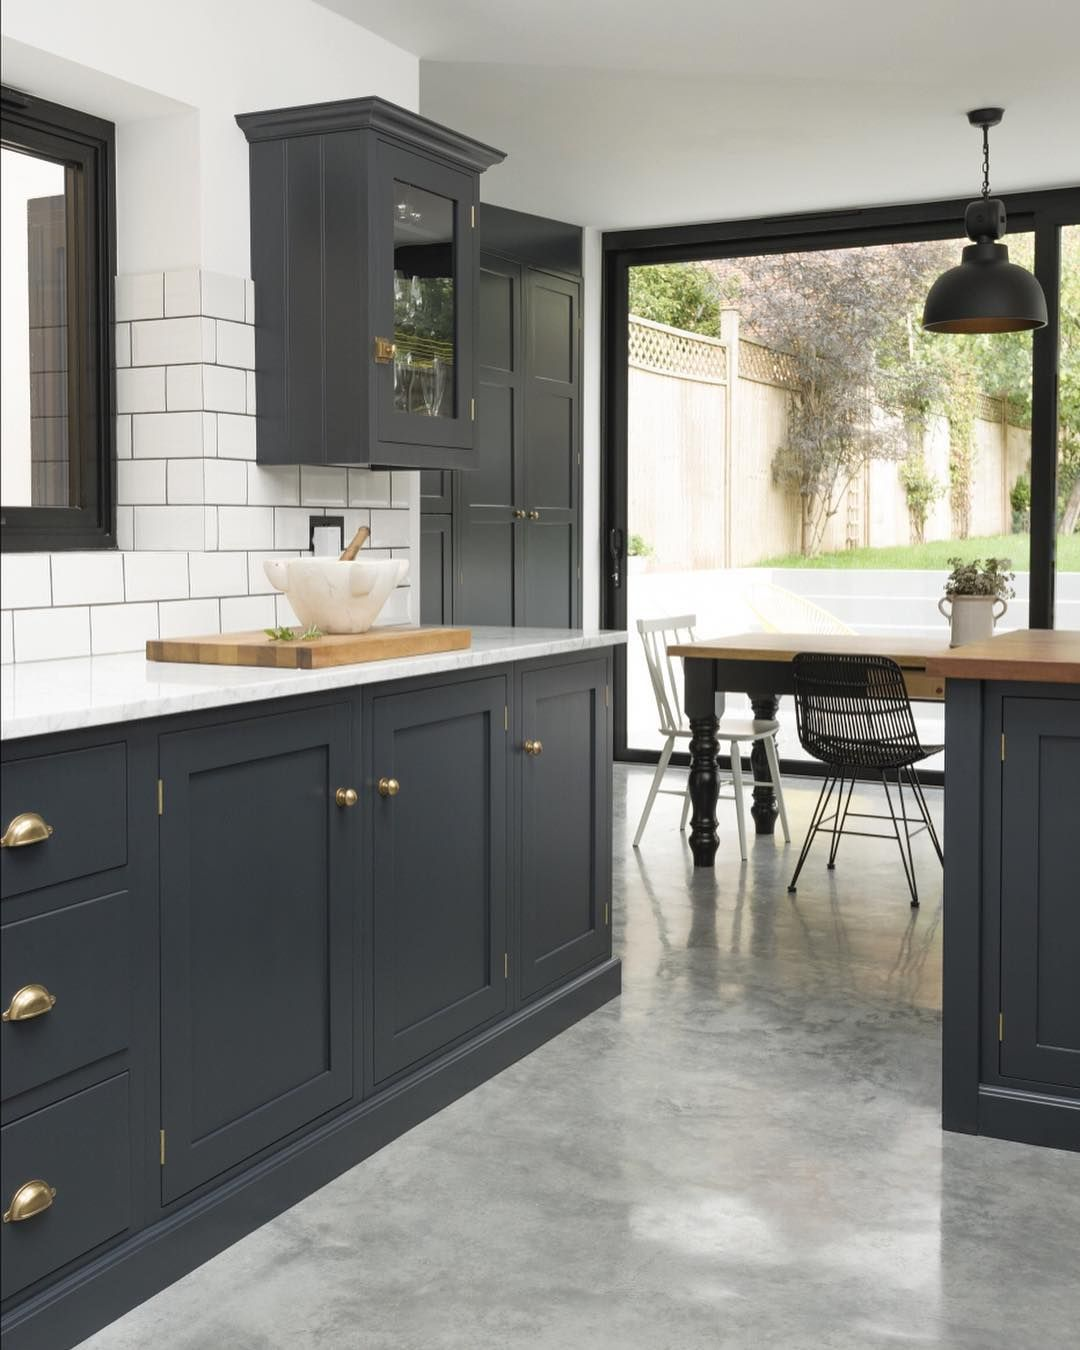 Pin by Rachel Ashmore on Kitchen Ideas in 2019 Concrete